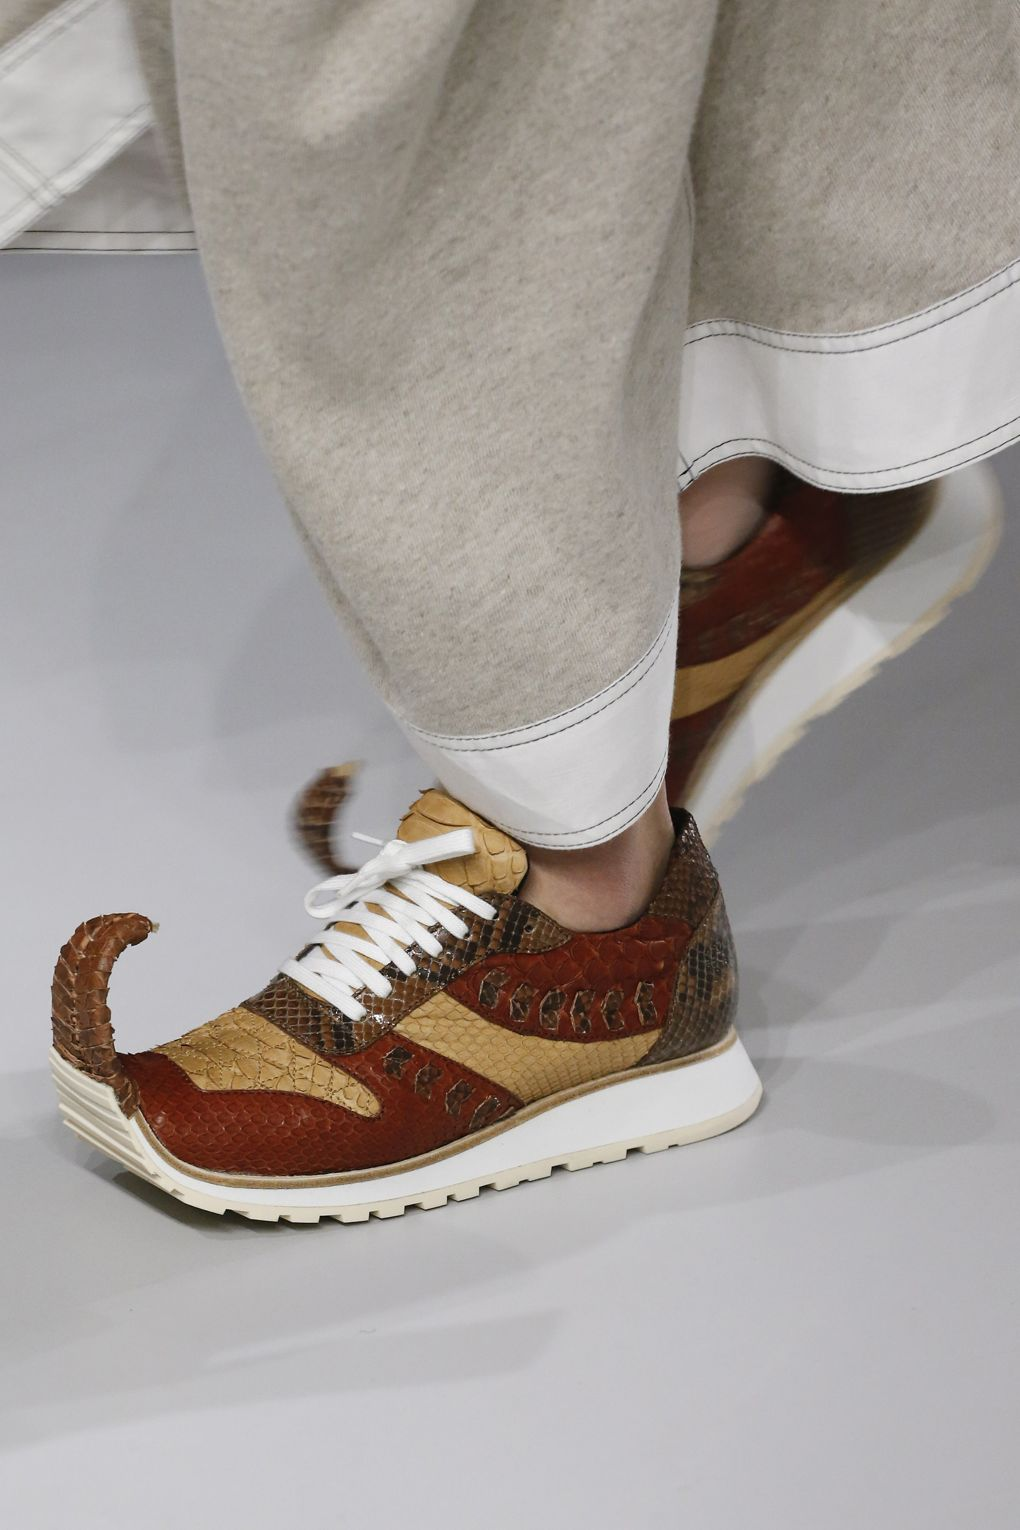 SPRING SUMMER 2018 GUIDE TO SHOES